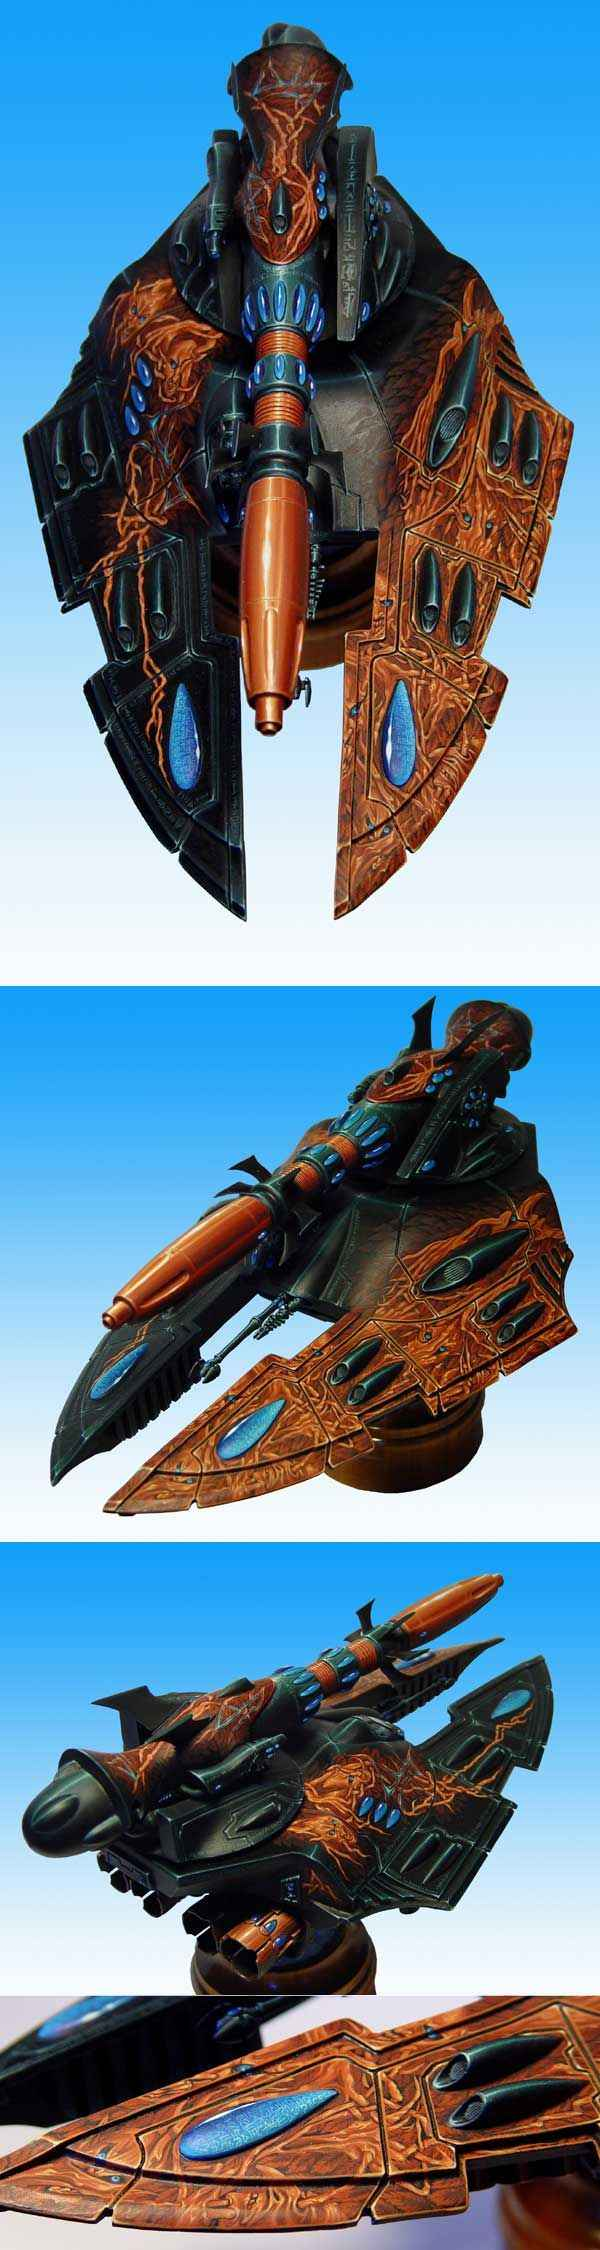 Song of hunger - eldar Cobra gravtank